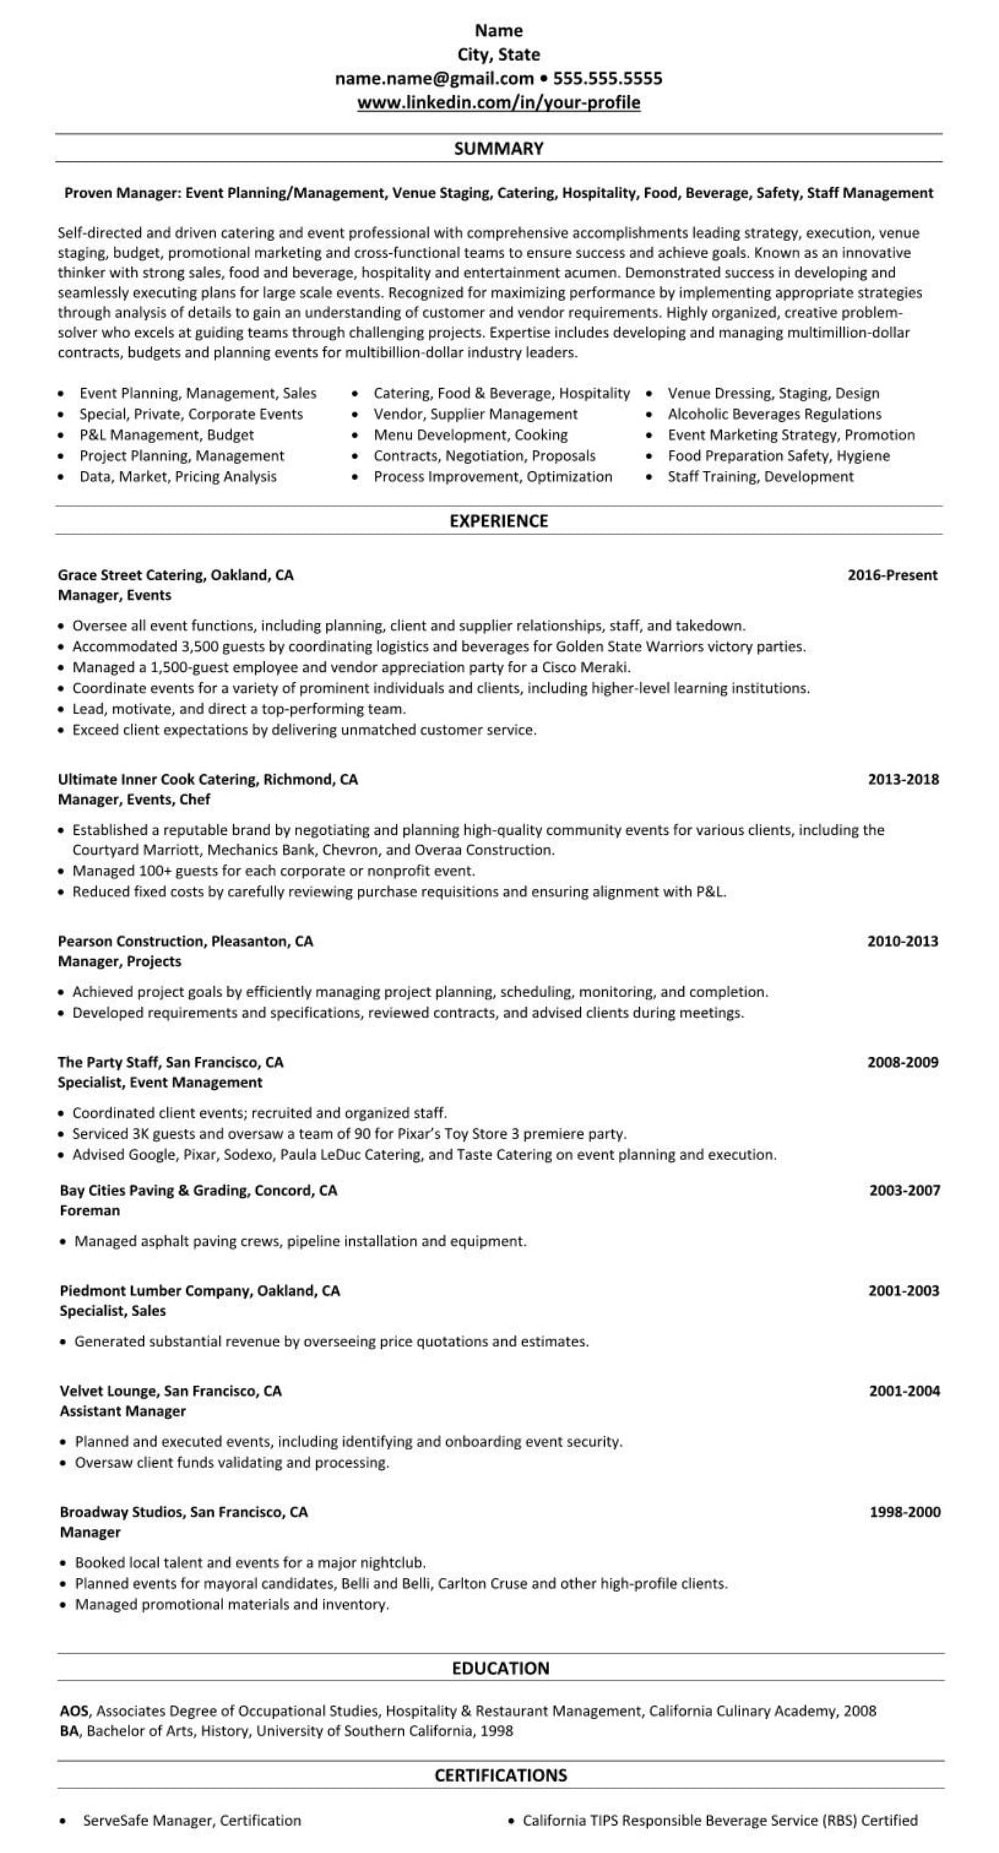 Professional executive resume example event planner management 2587